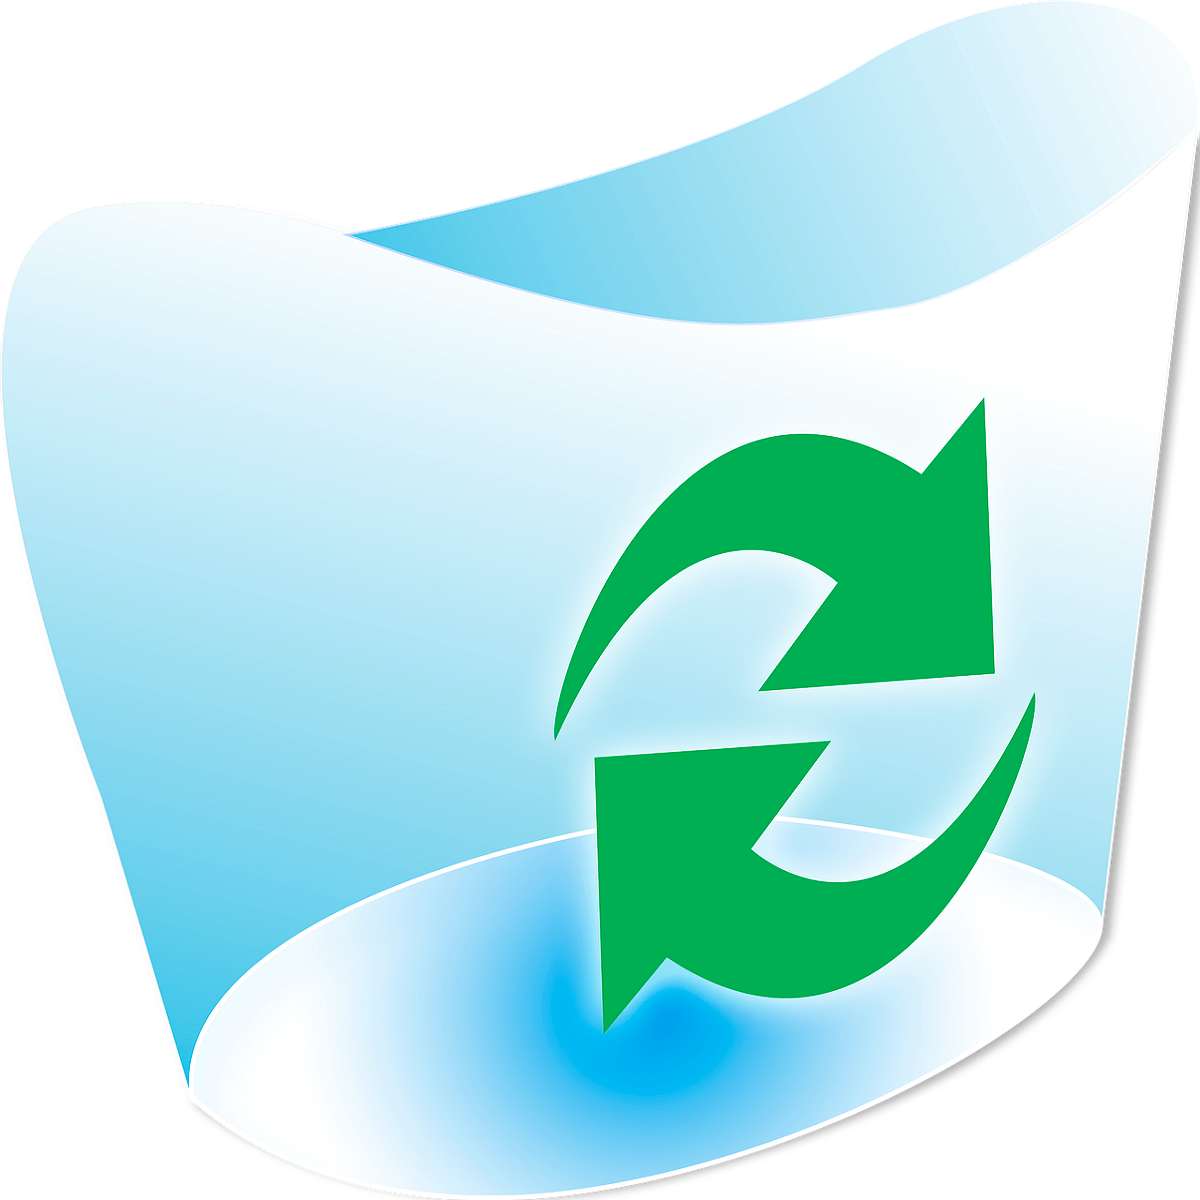 How To Fix Windows 10 Recycle Bin Icons Not Refreshing Recycle Bin Icon Recycling Bins Recycling